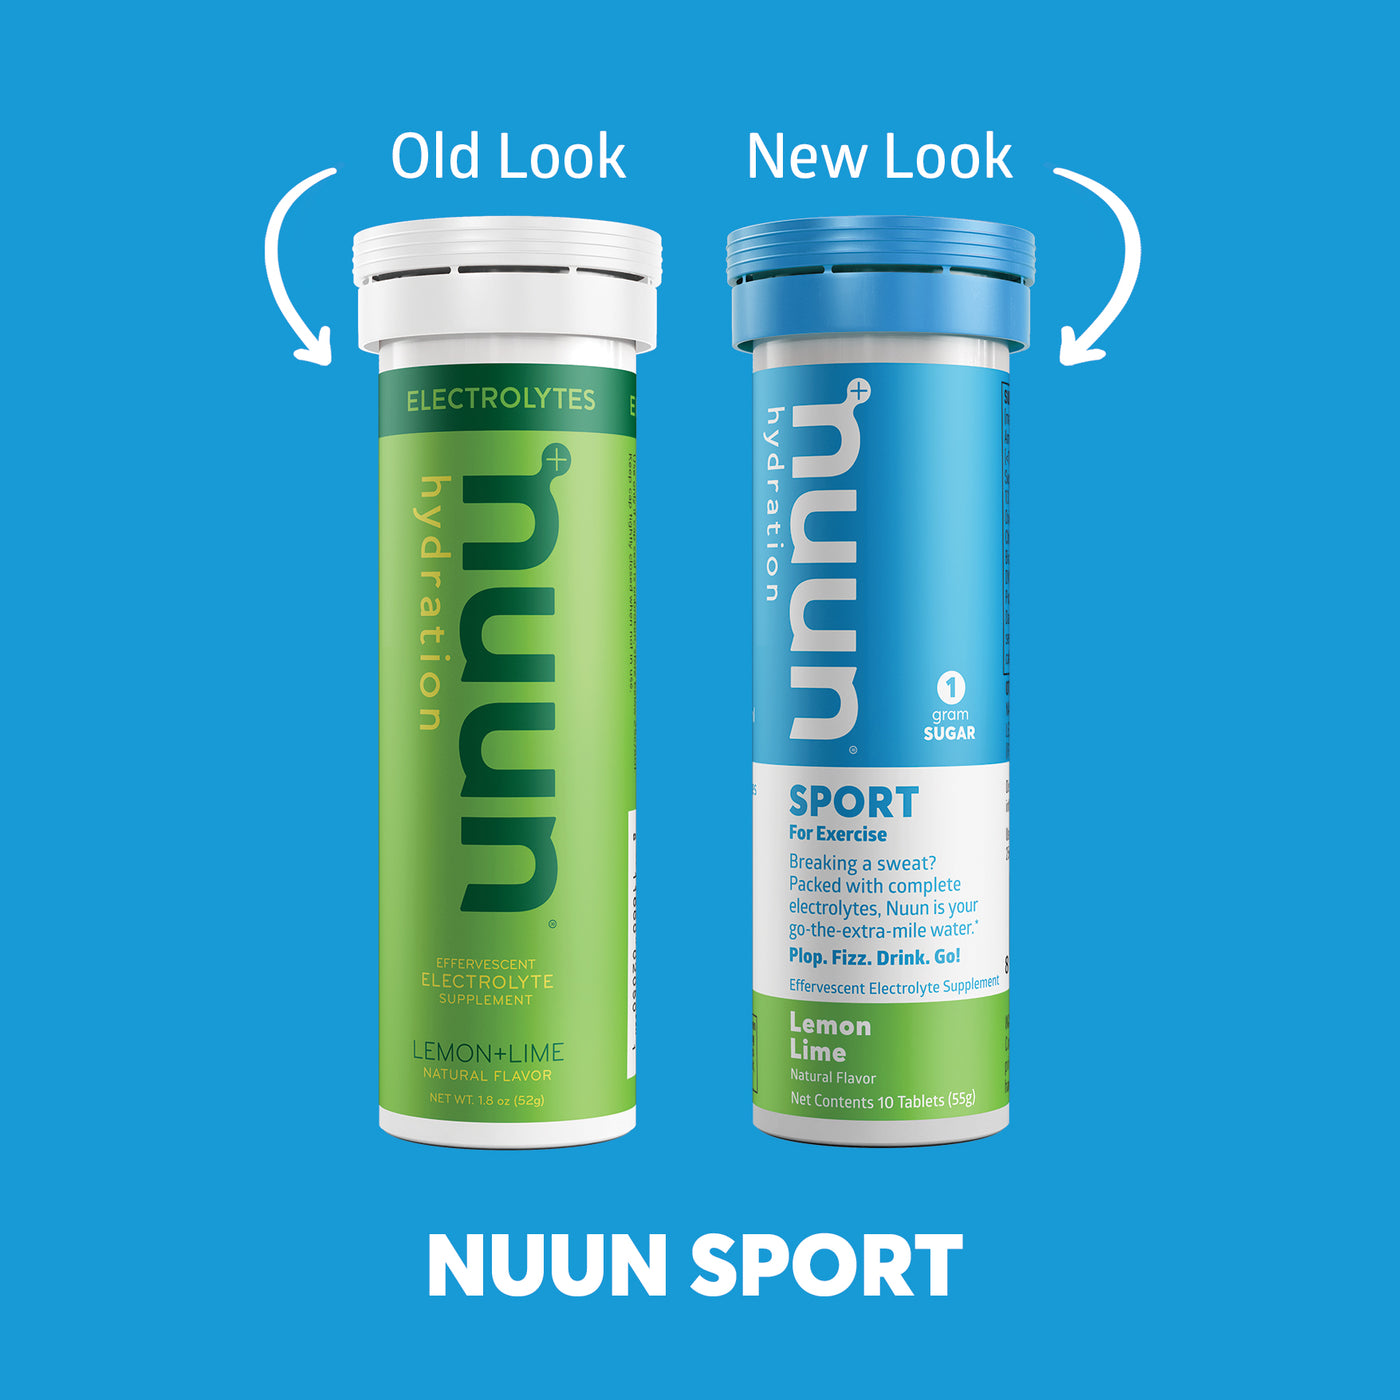 Nuun Sport: Old look and New look